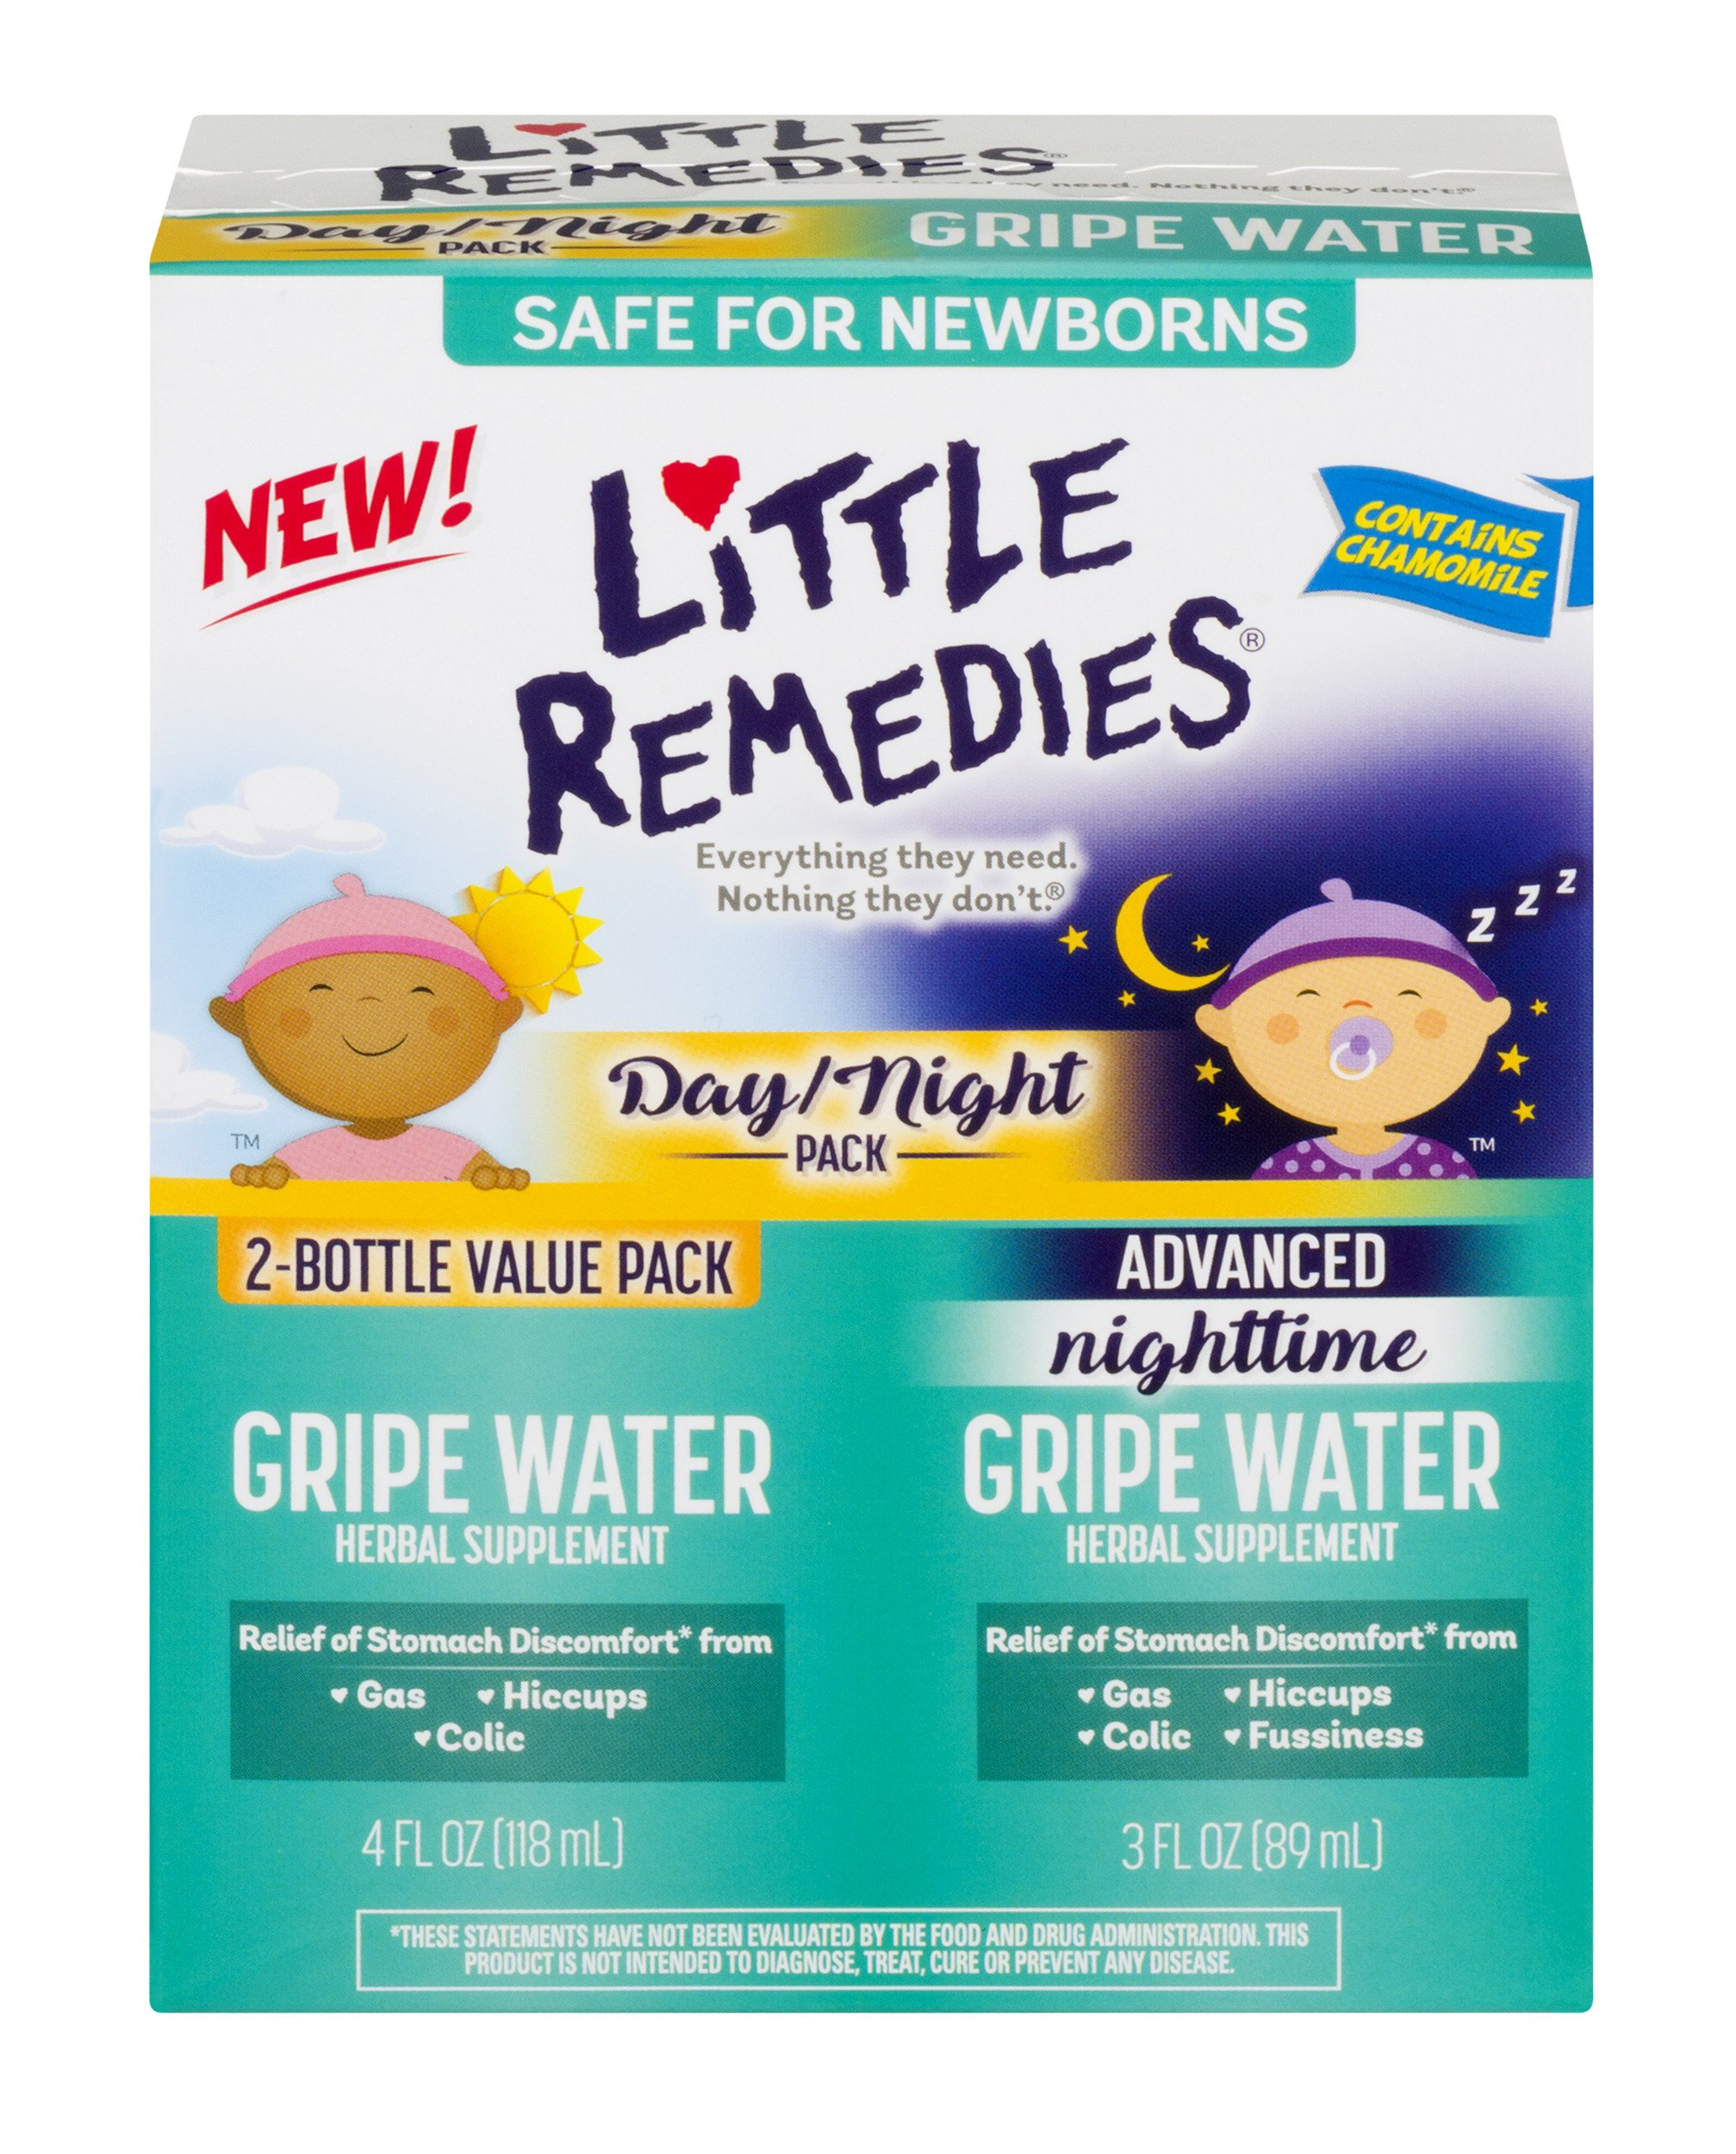 Little Remedies Day & Night Gripe Water Value Pack | Herbal Supplement | 2 Bottles | Gently Relieves Stomach Discomfort from Gas, Colic, and Hiccups | Safe for Newborns by Little Remedies (Image #1)